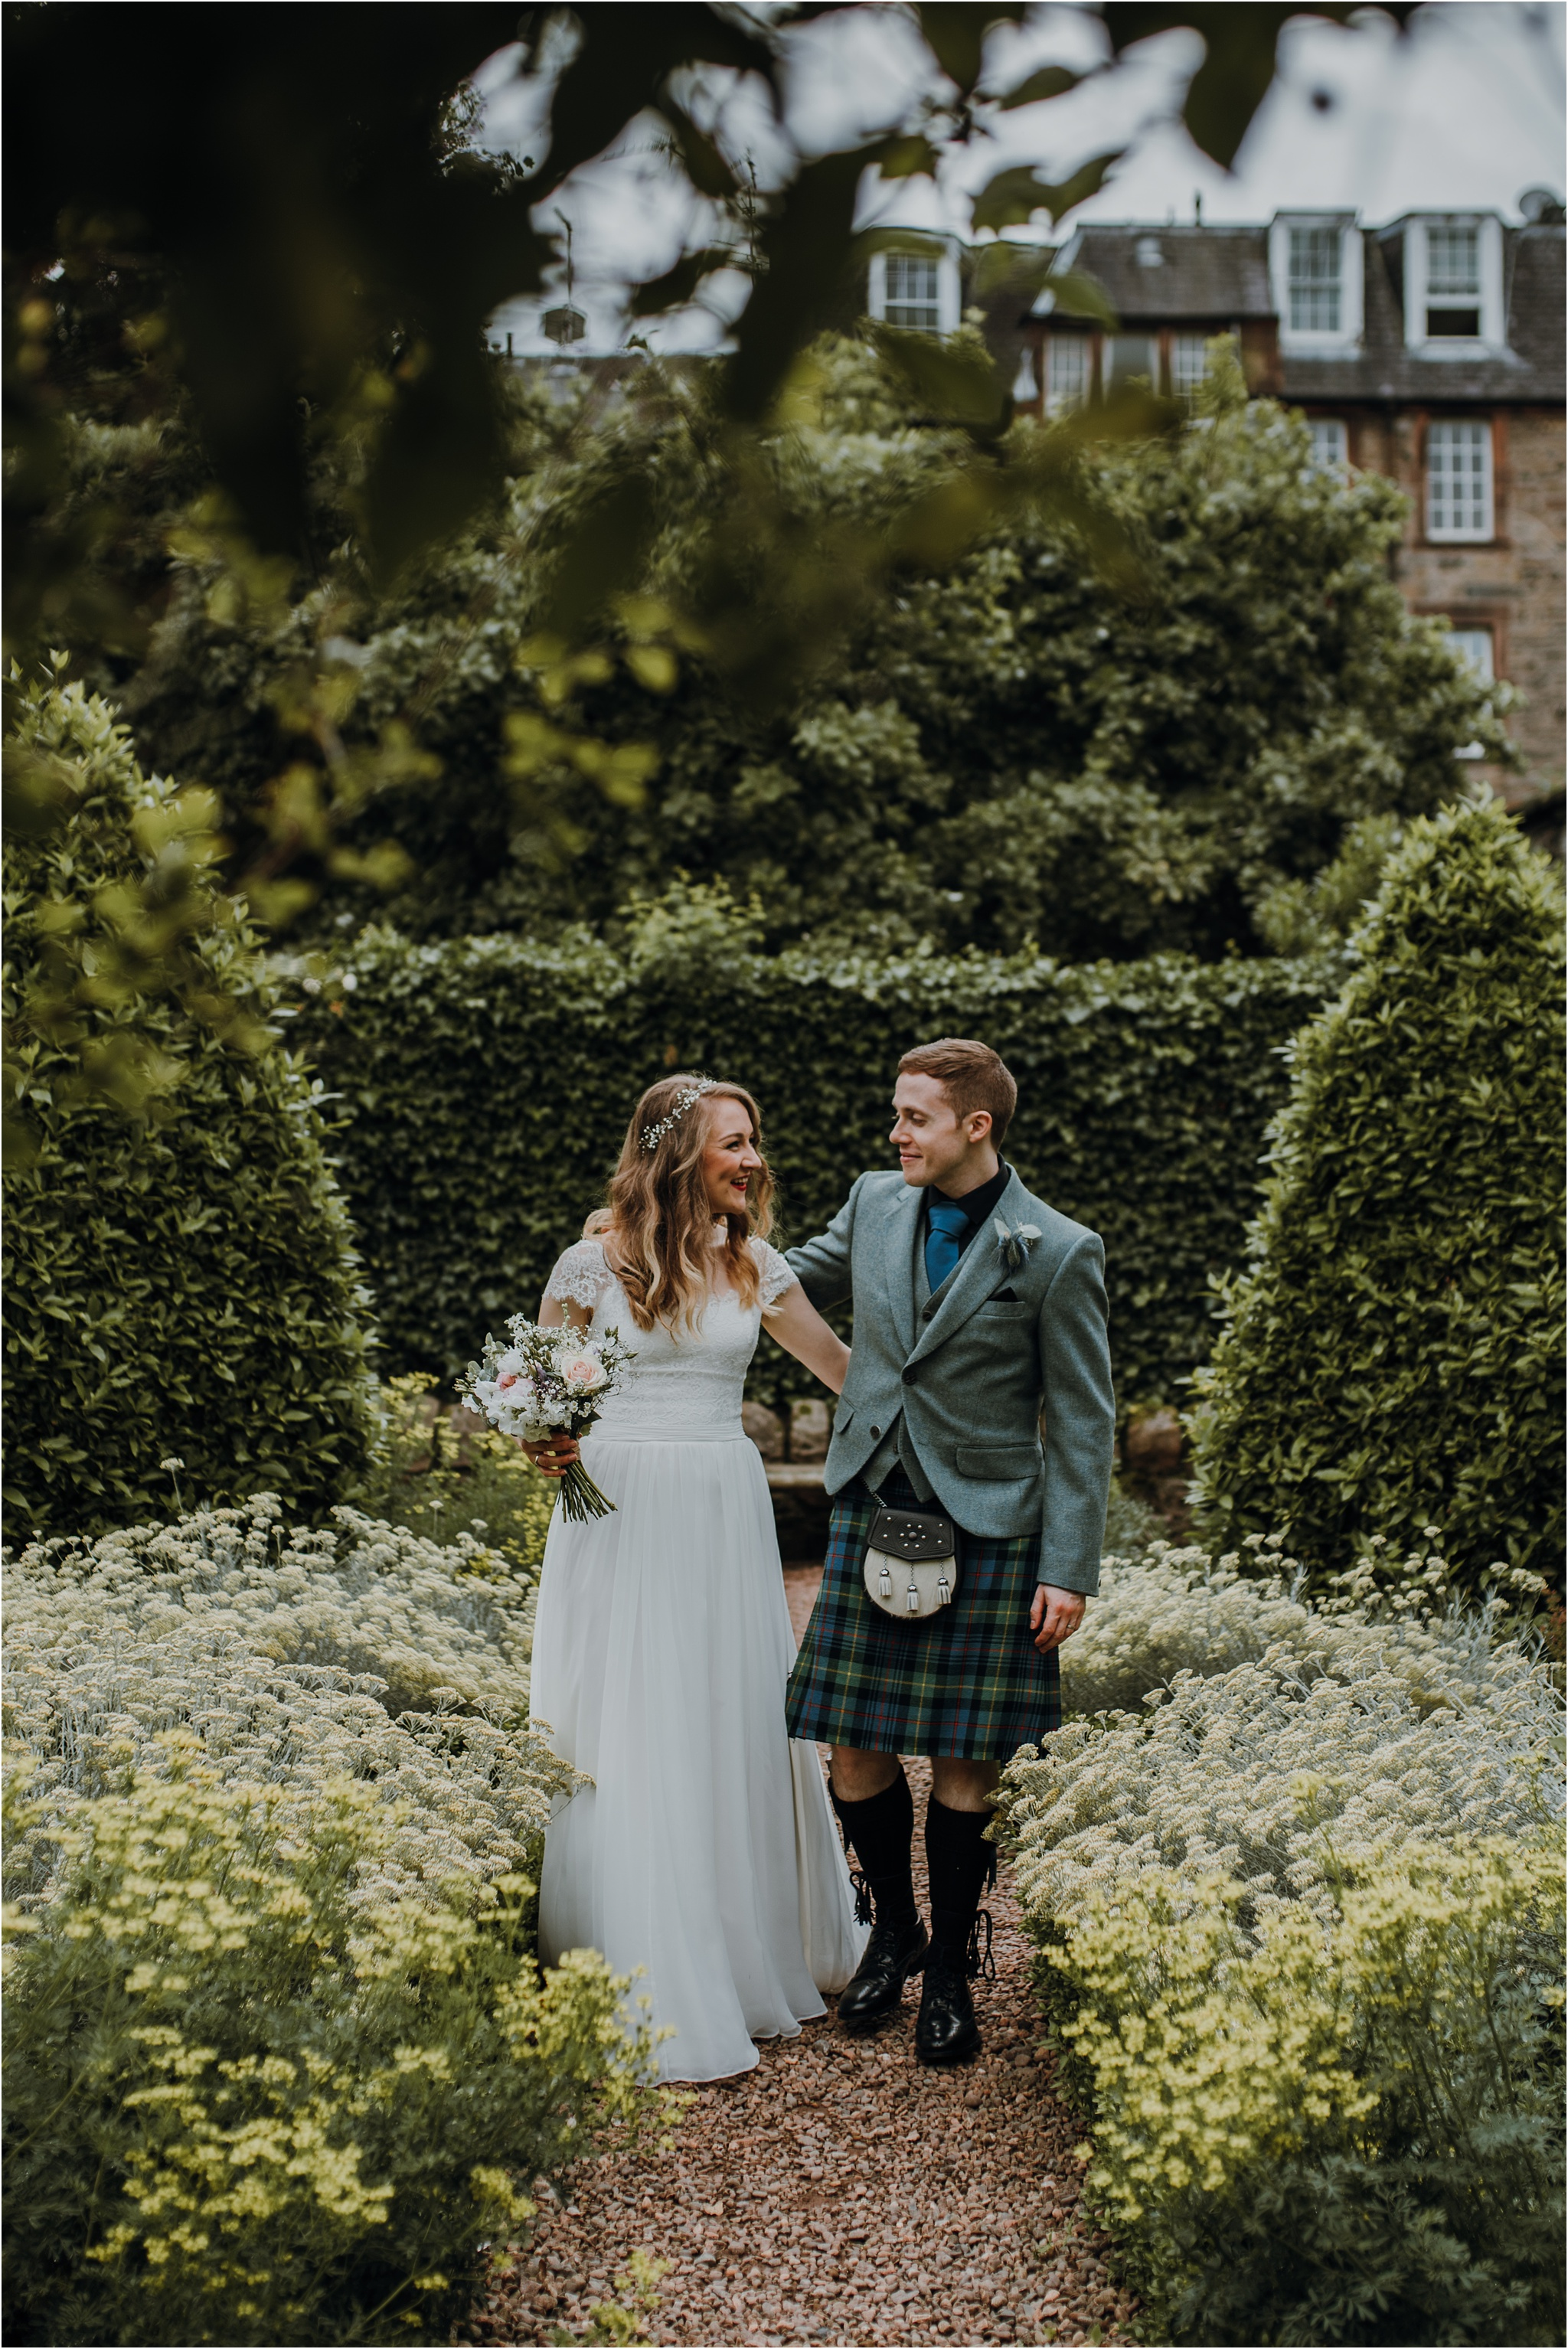 Edinburgh-wedding-photographer_39.jpg